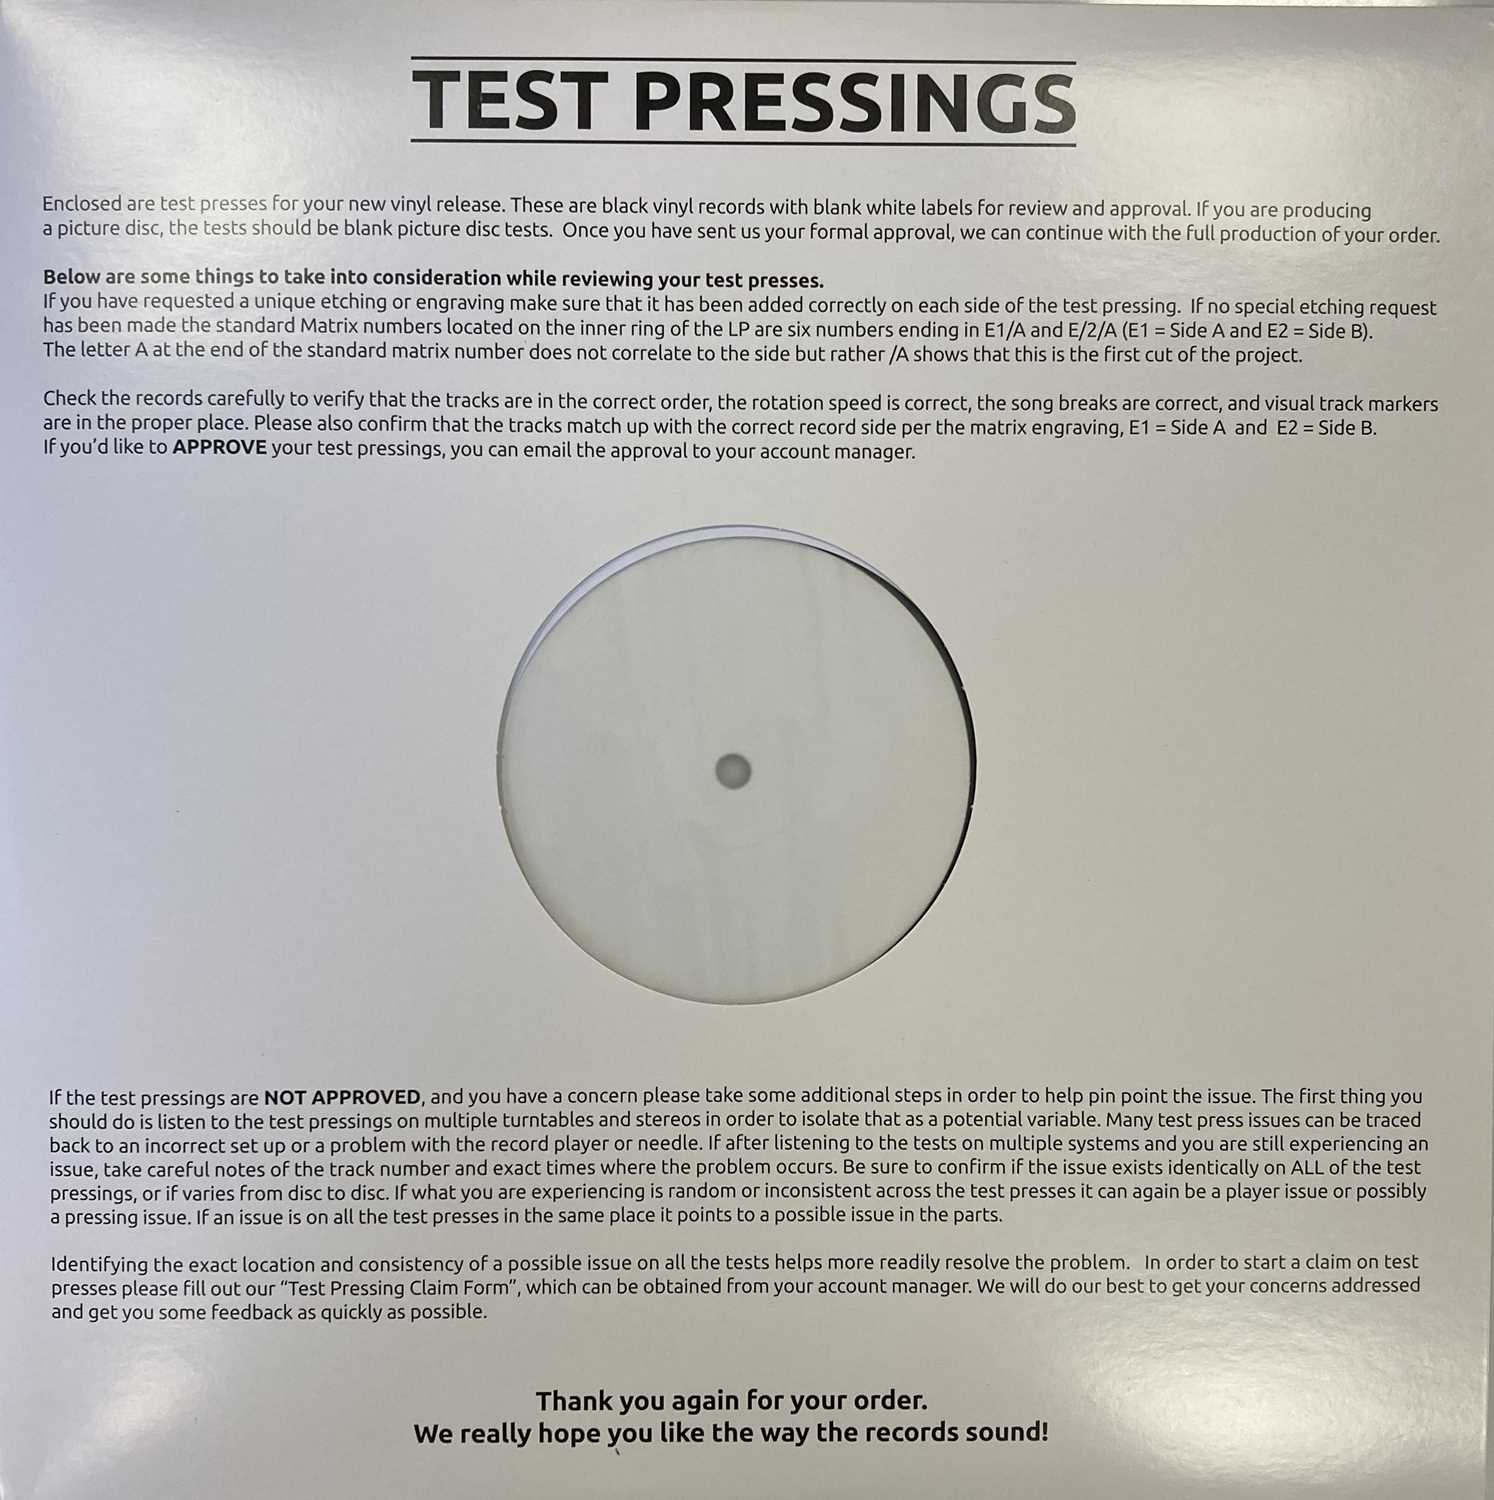 DUSTY SPRINGFIELD - IN MEMPHIS LP (2018 WHITE LABEL TEST PRESSING) - Image 2 of 2